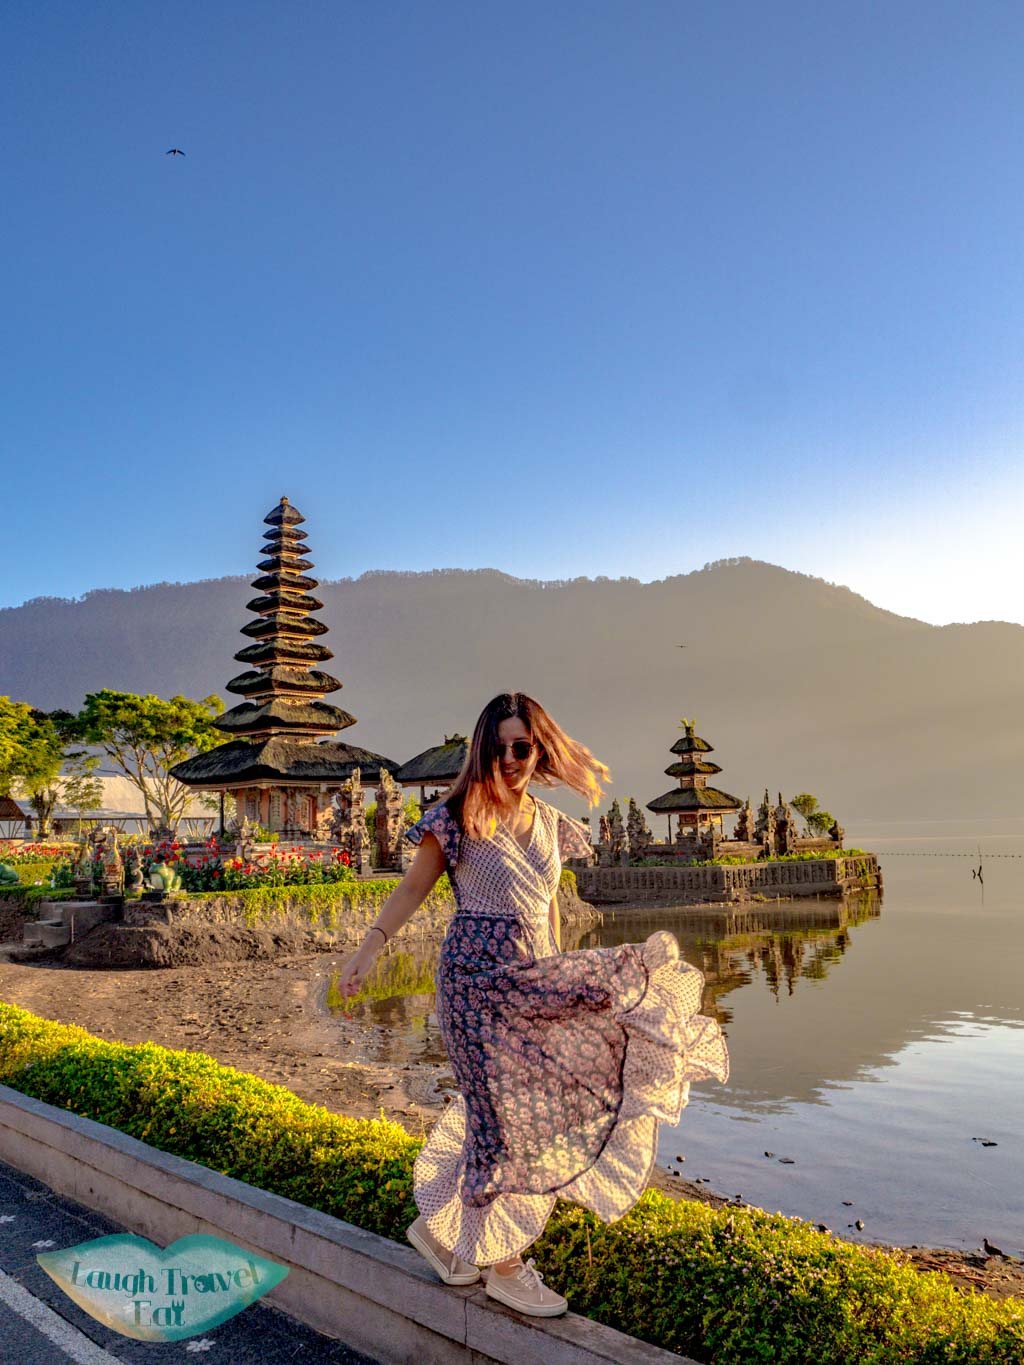 me-sunrise-at-ulun-danu-beratan-temple-bedugul-bali-indonesia-laugh-travel-eat